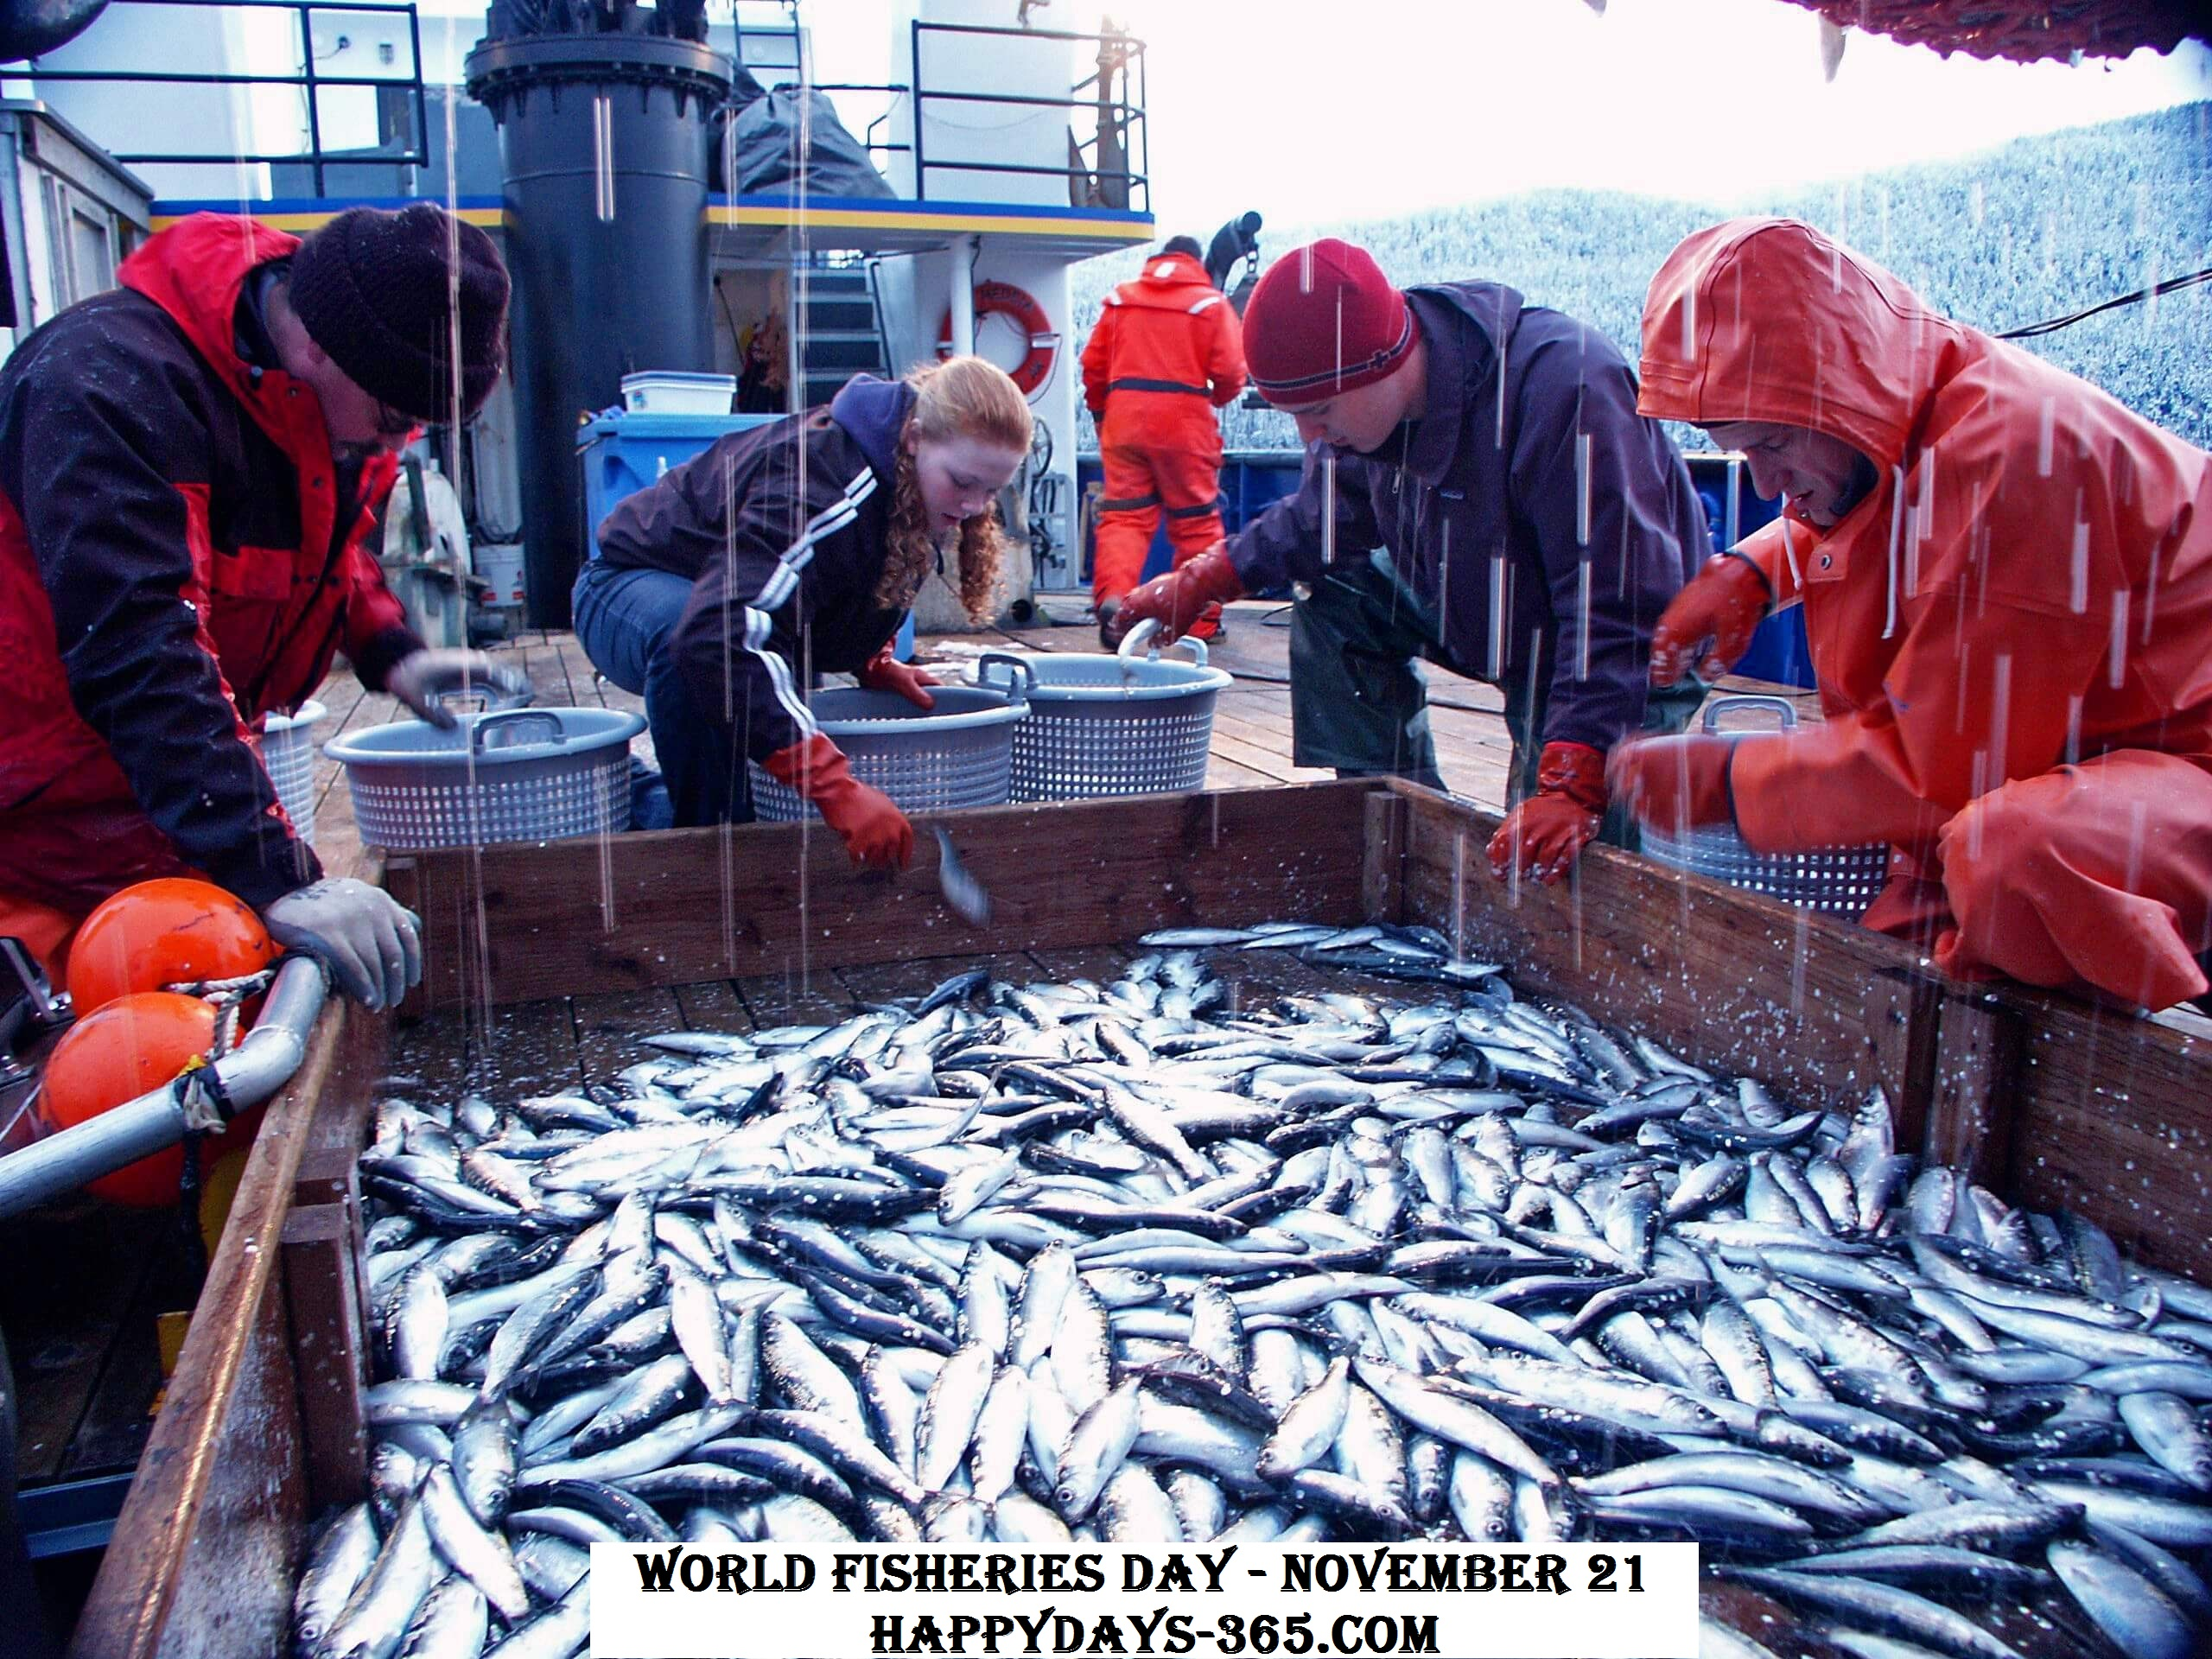 World Fisheries Day – November 21, 2019